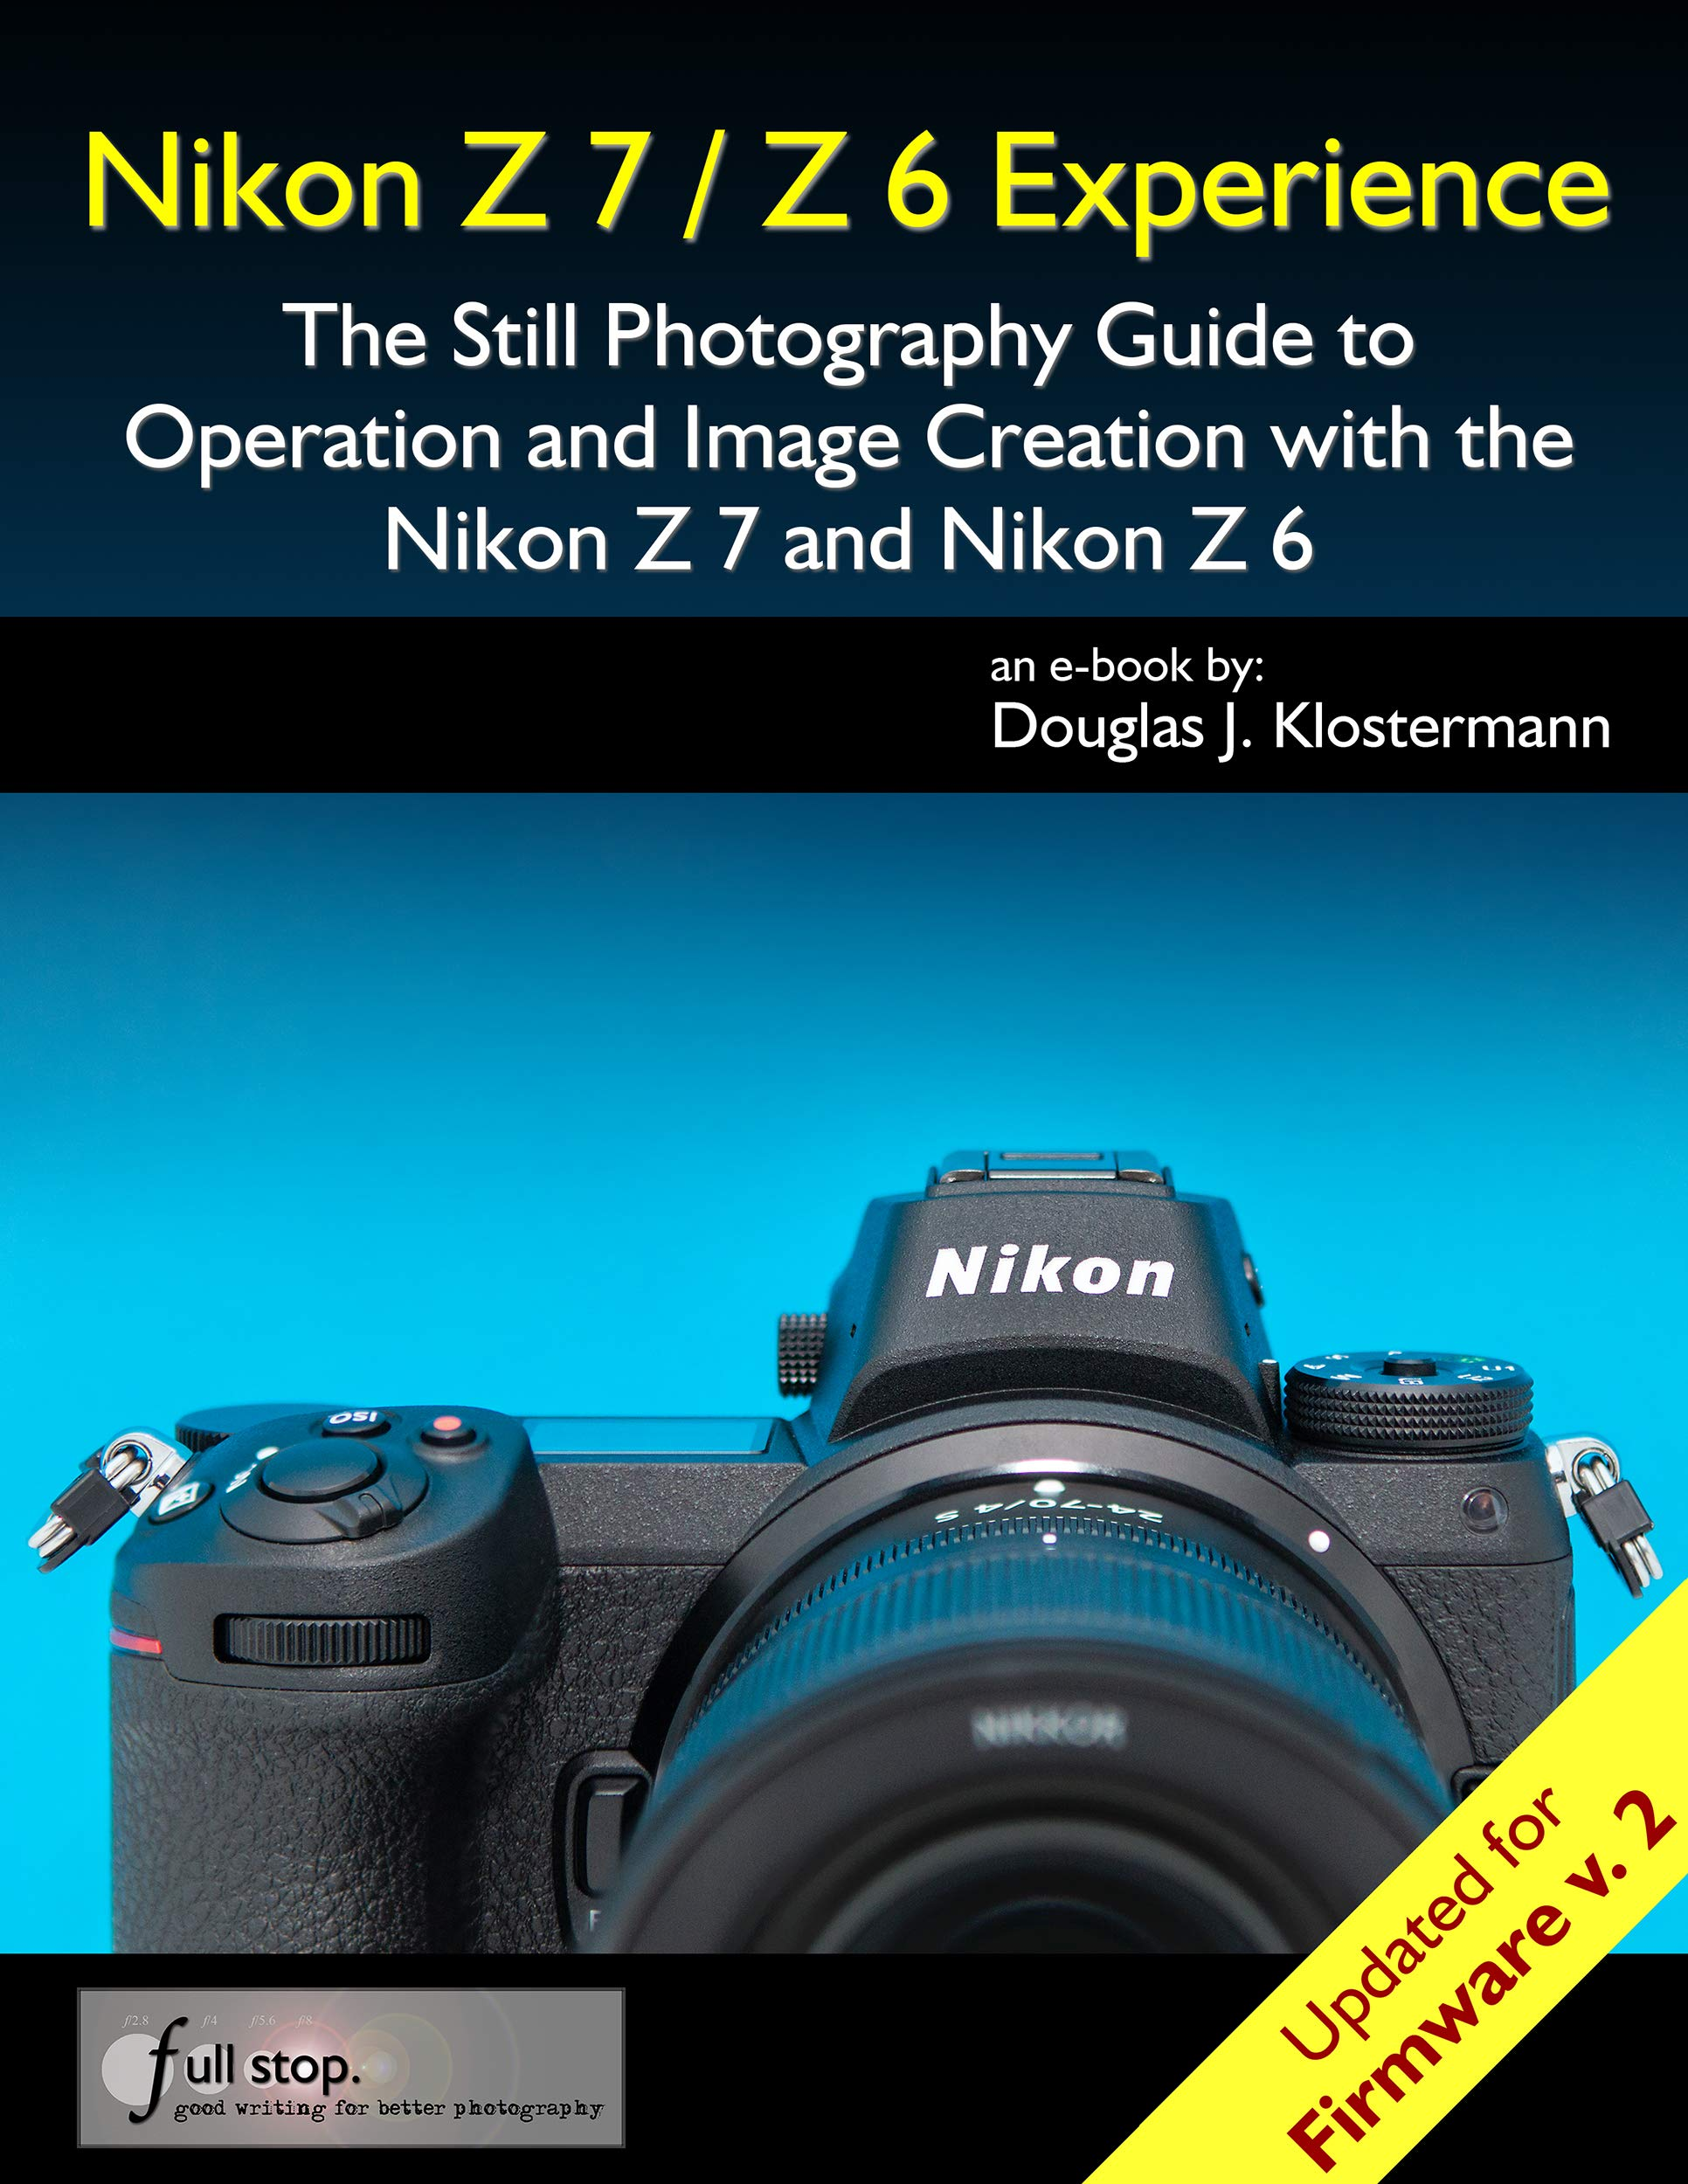 Nikon Z7   Z6 Experience   The Still Photography Guide To Operation And Image Creation With The Nikon Z7 And Nikon Z6  Updated For Firmware 2.0  English Edition